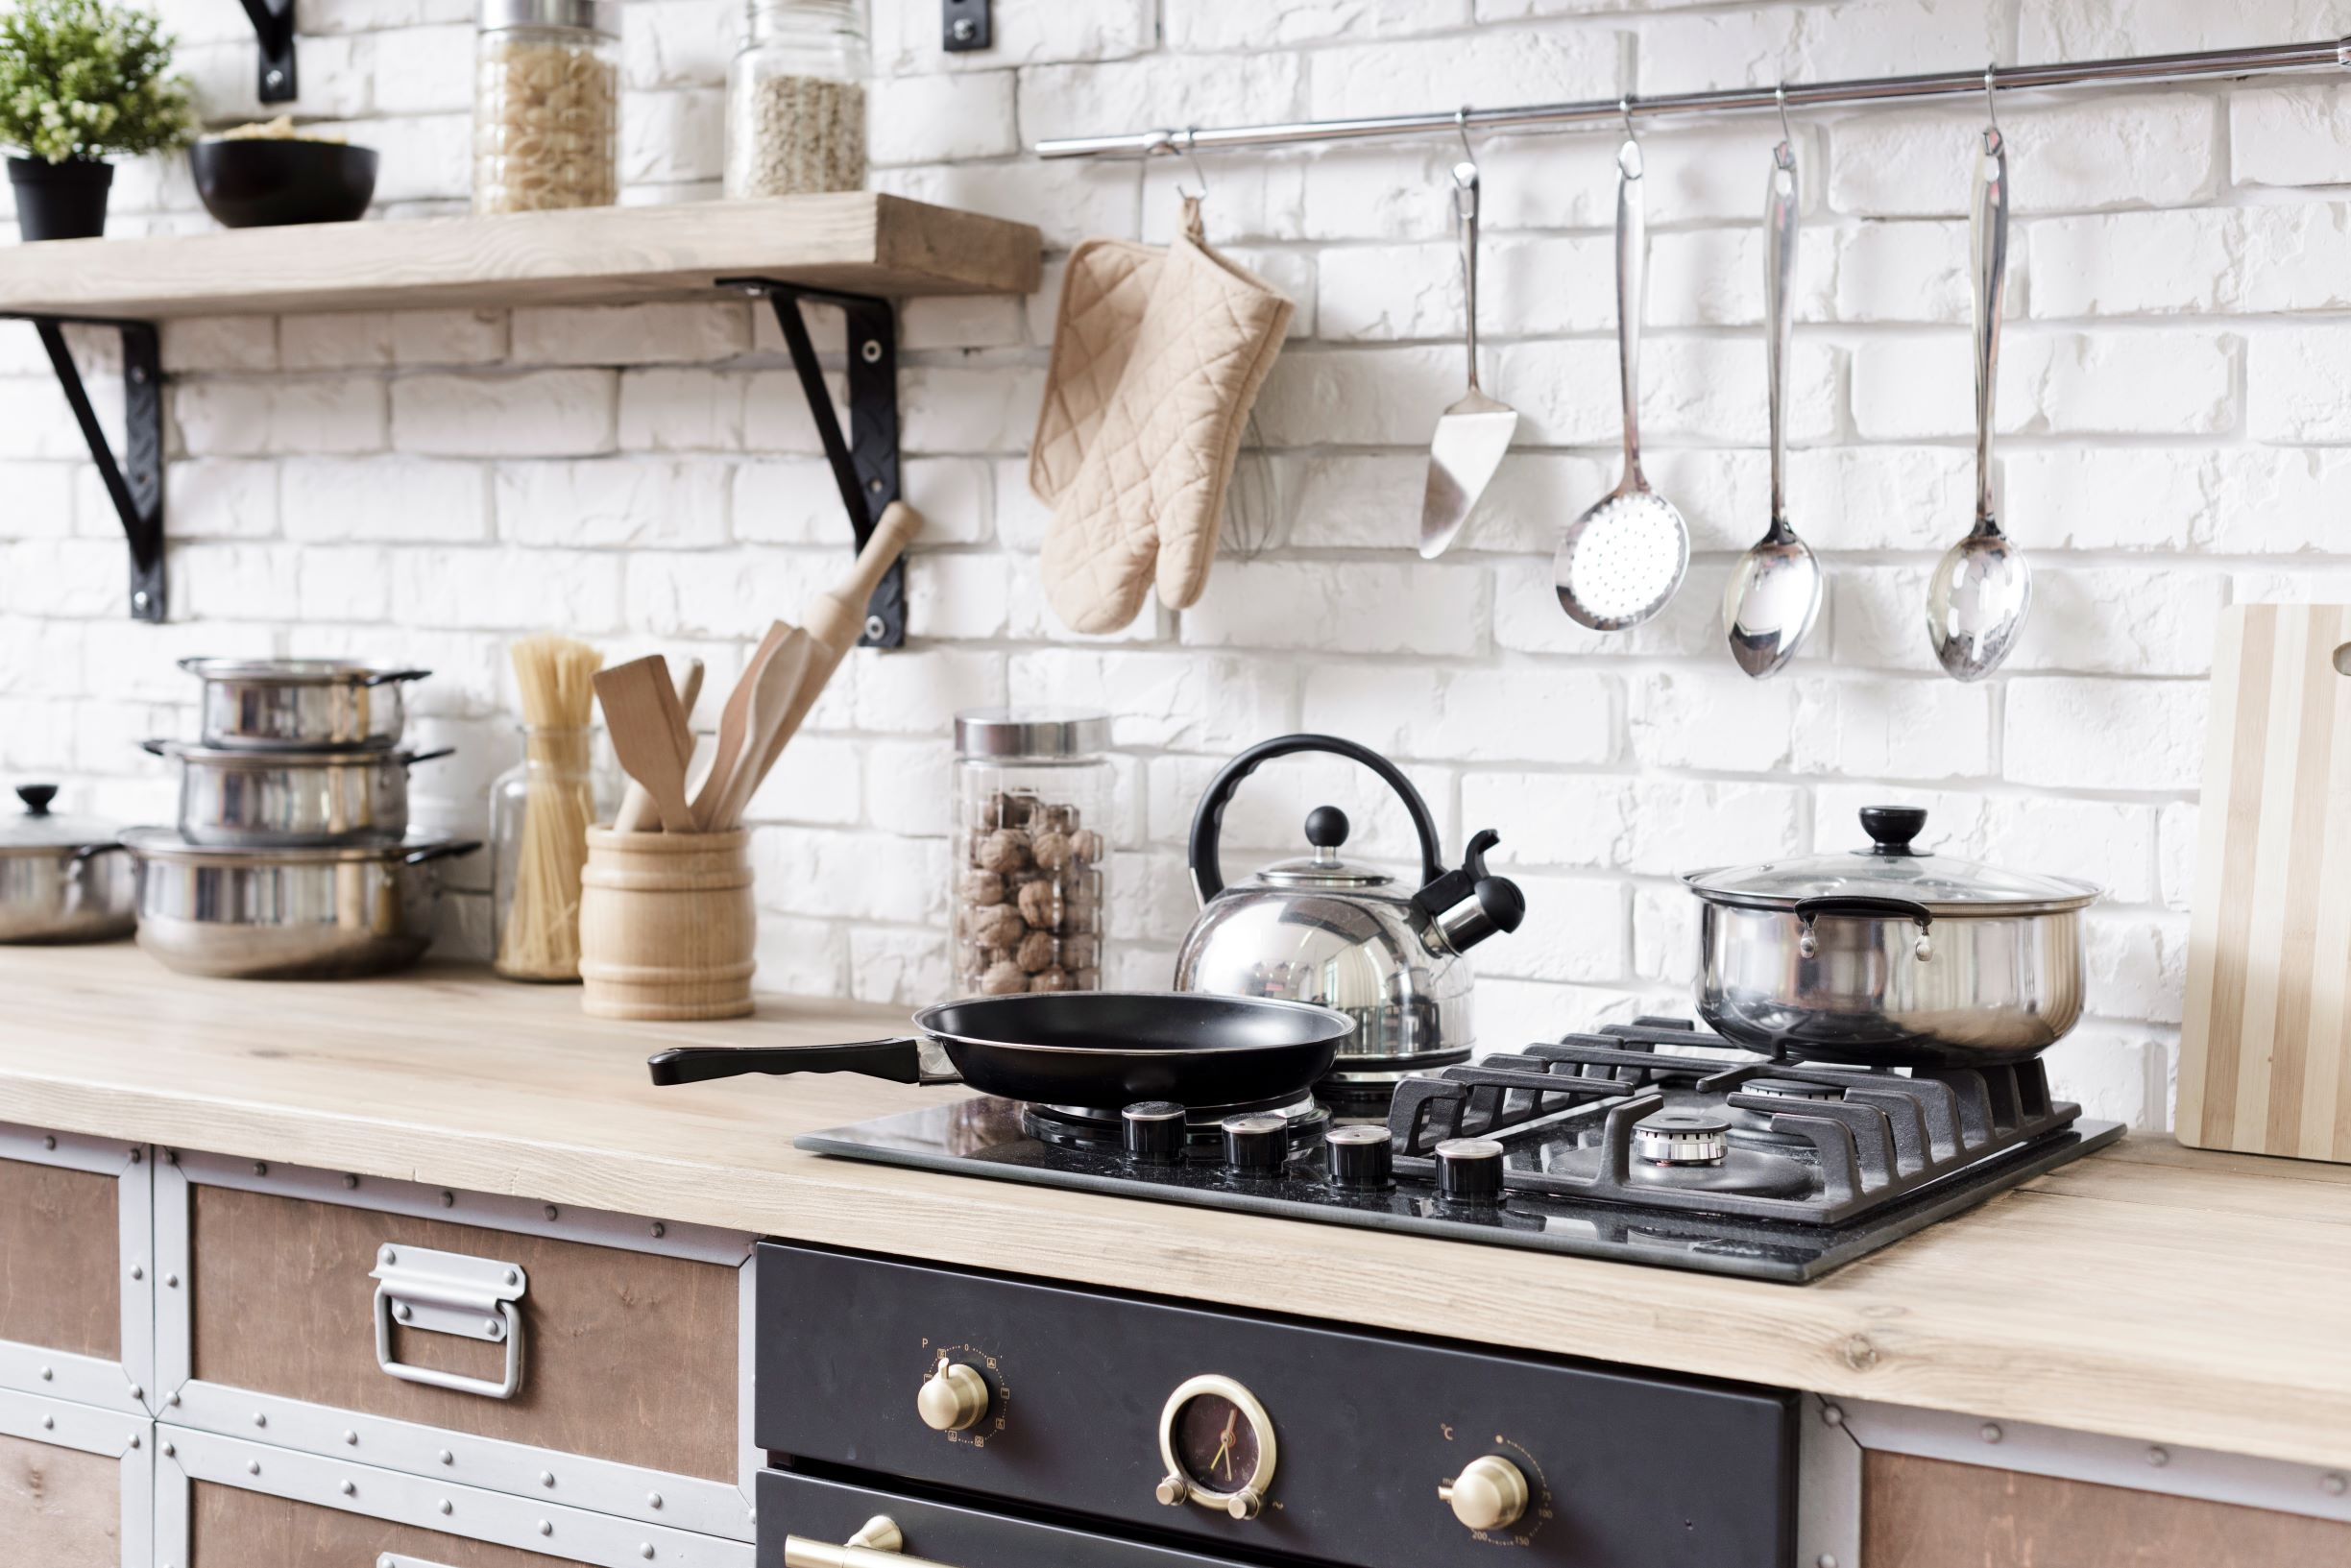 Tech-Gift-Guide-Image-of-kitchen-with-pots-on-stove.jpg